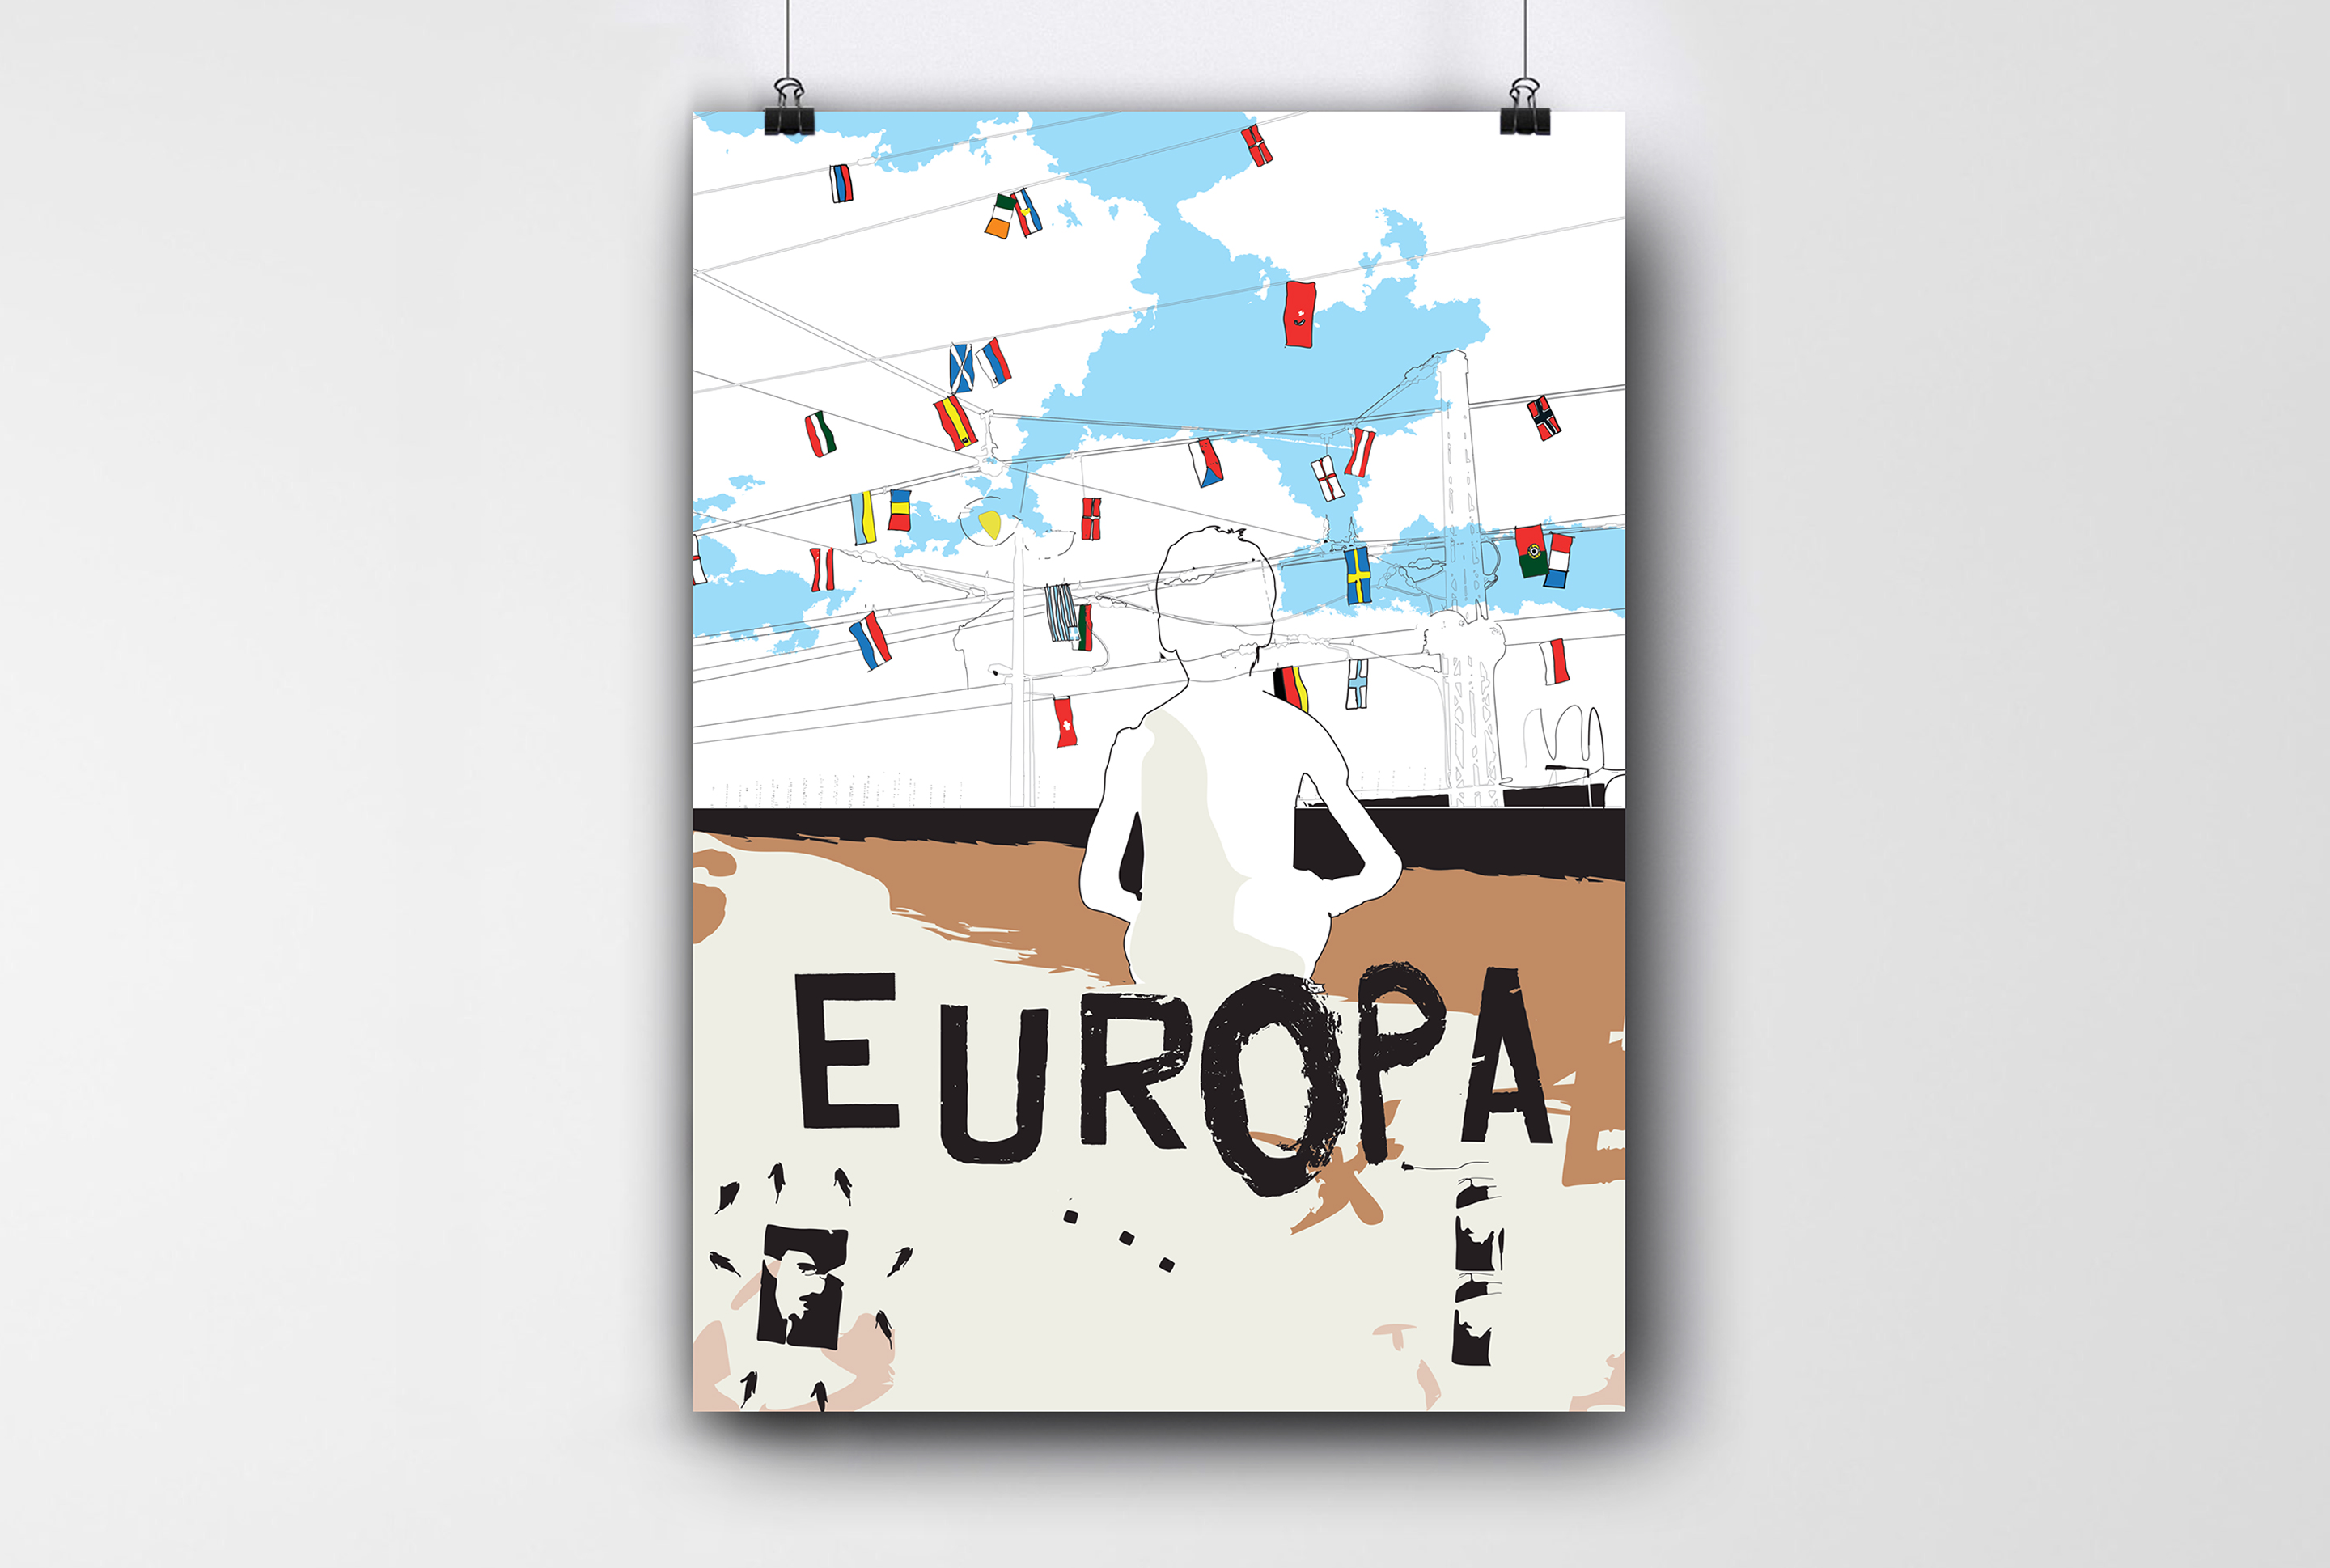 europa-poster_contest